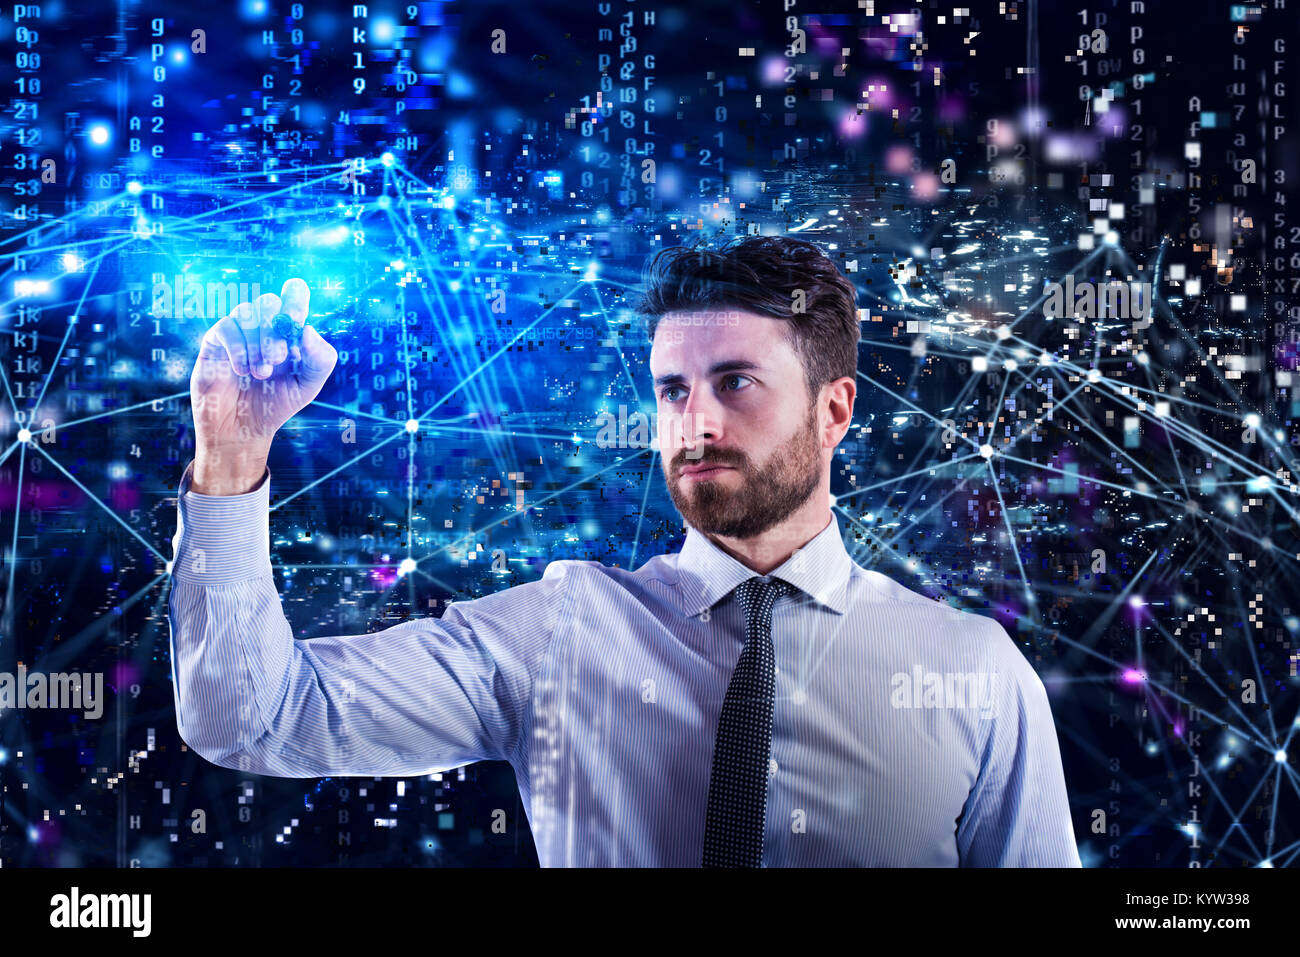 Programmer man works with a laptop on a network application - Stock Image